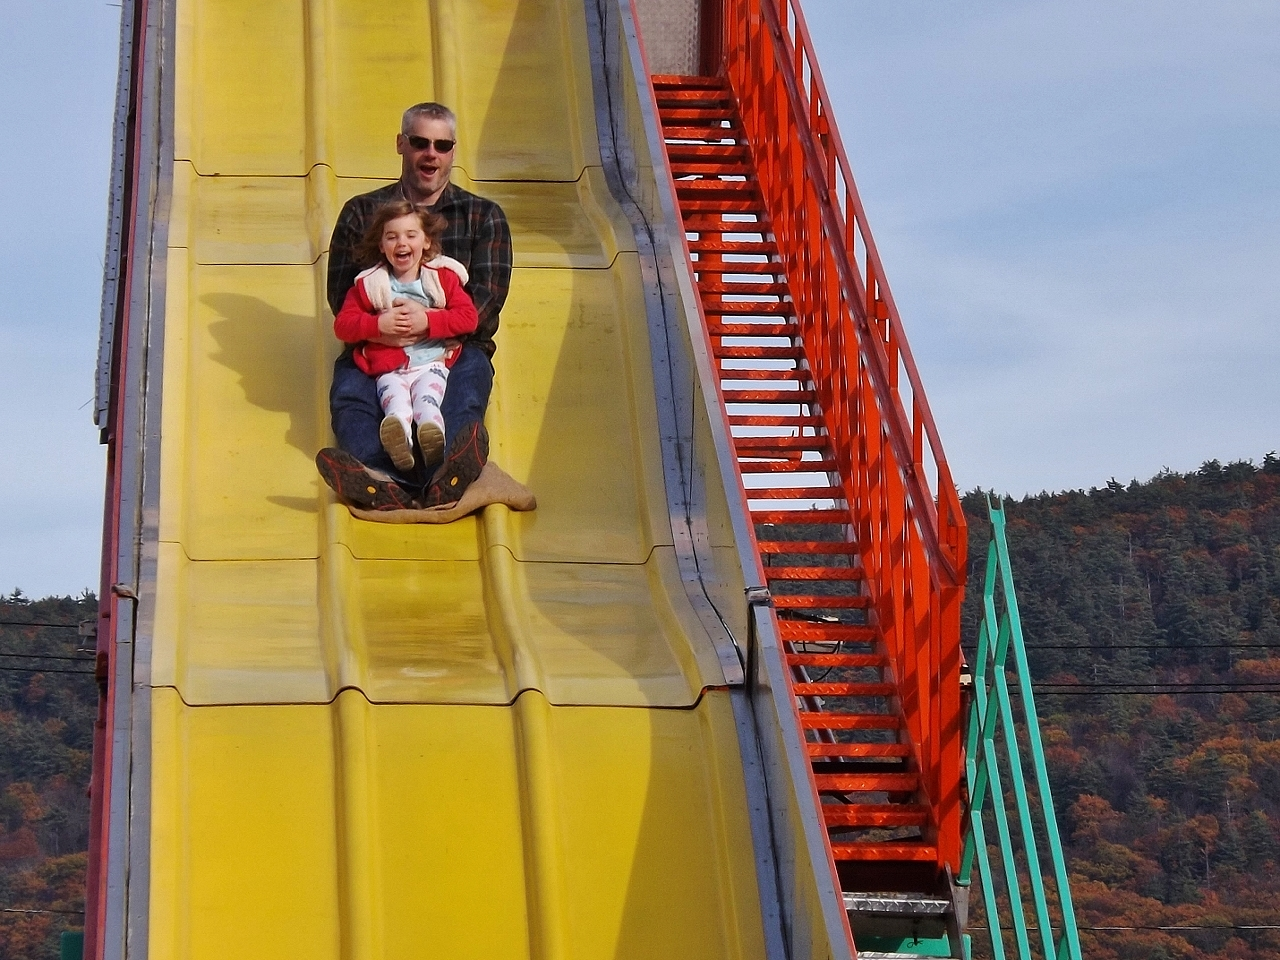 A giant slide provides a ride for this man and child.